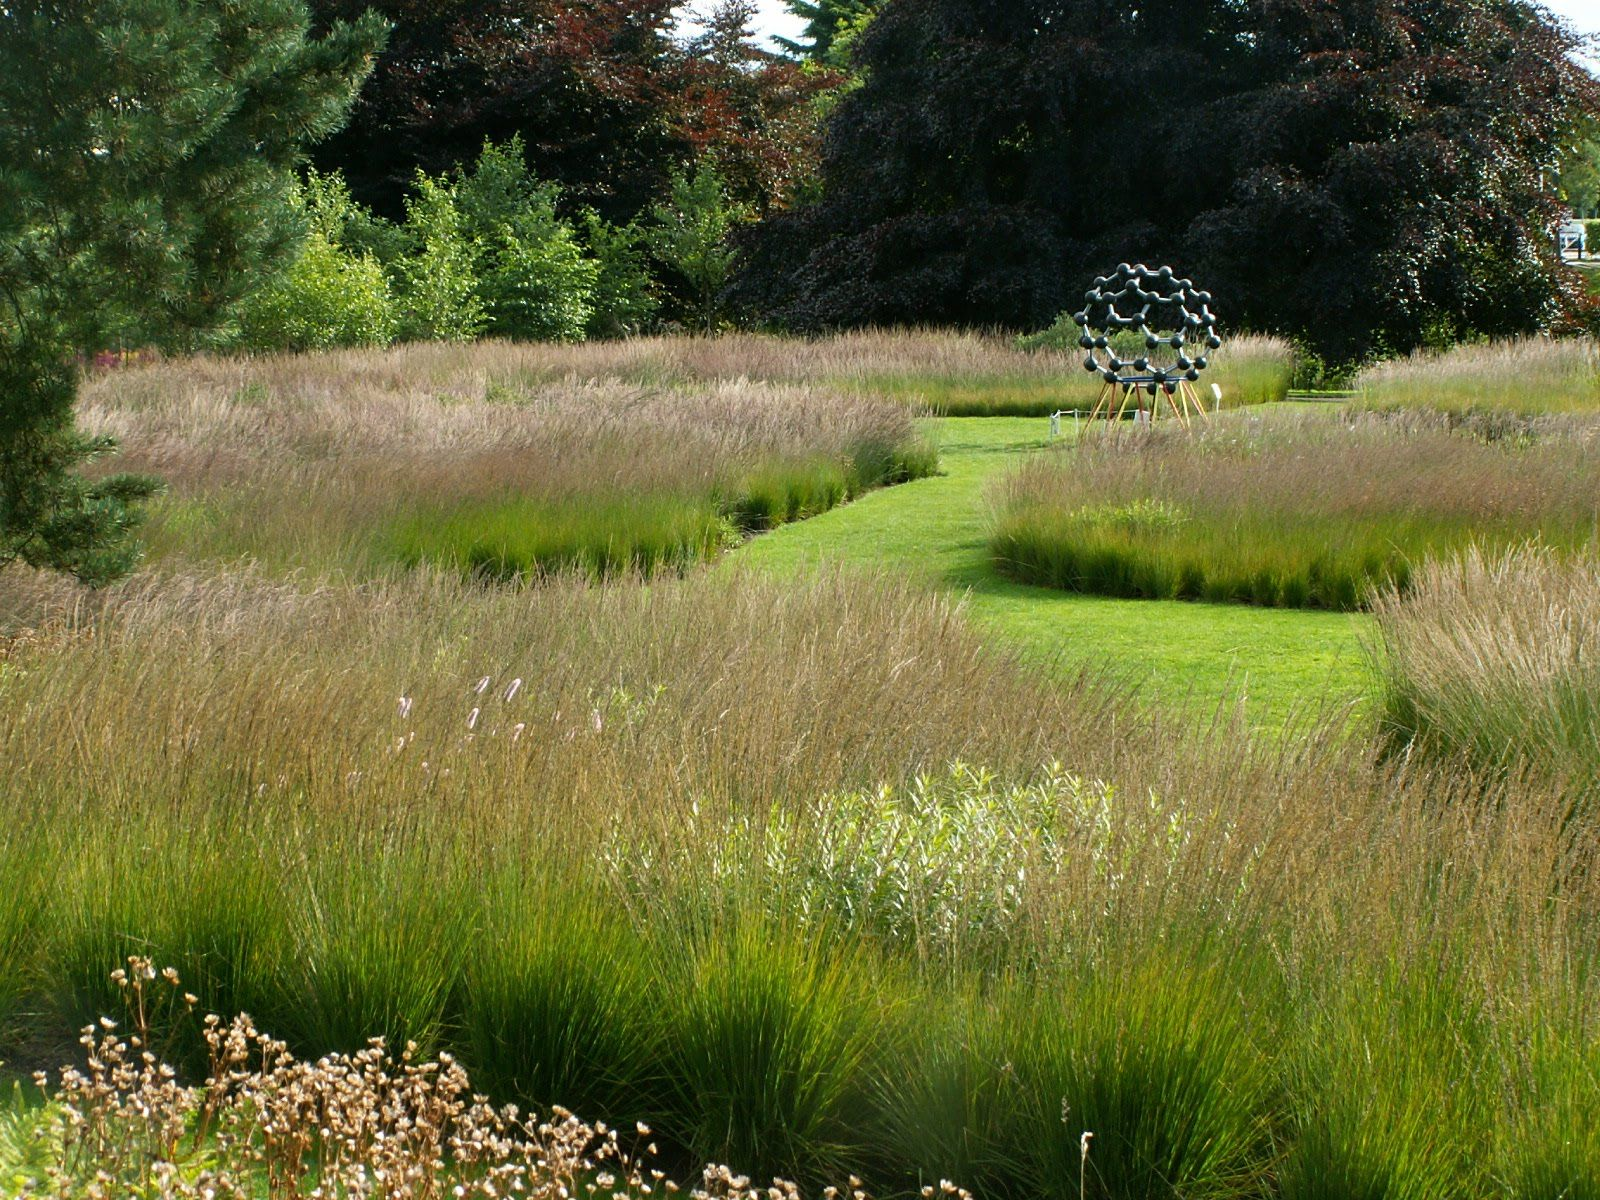 Piet oudolf trentham gardens rivers of grass cool for Gardening with grasses piet oudolf